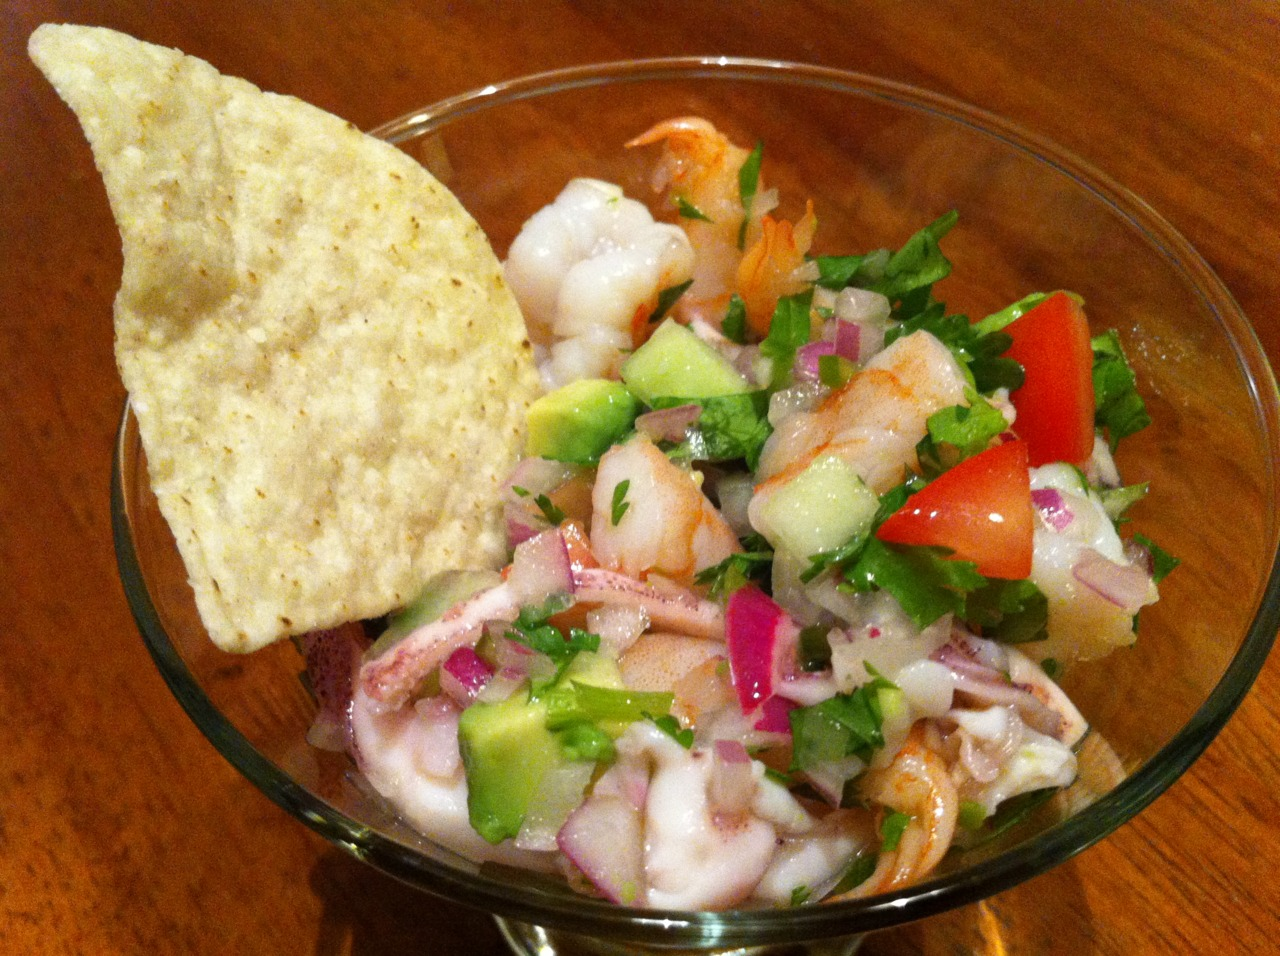 Ceviche we made at home, calamari and shrimp!